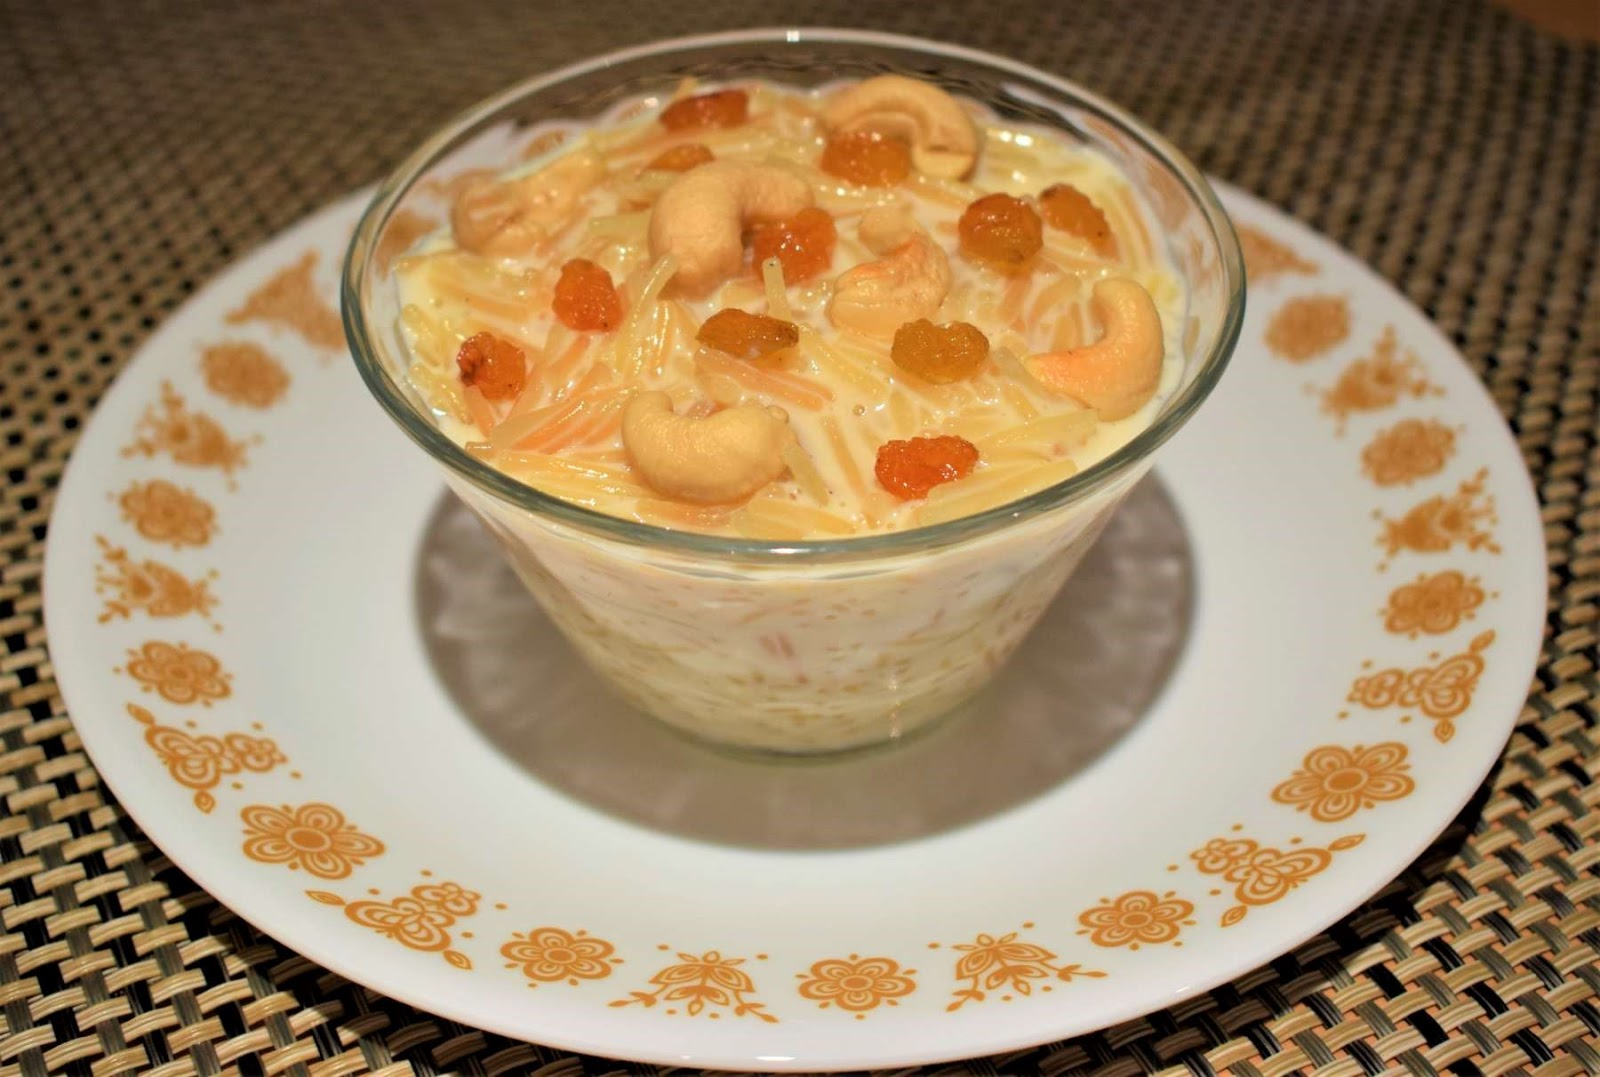 Indian Dessert, Quick and Easy, Seviyan Kheer | Vermicelli Pudding, Rumki's Golden Spoon, Recipe with vermicelli, Indian dessert recipe, kheer recipes, simui er payesh, sewai ki kheer, Eid special dessert recipe, Eid special Seviyan Kheer, Diwali special dessert recipes with milk